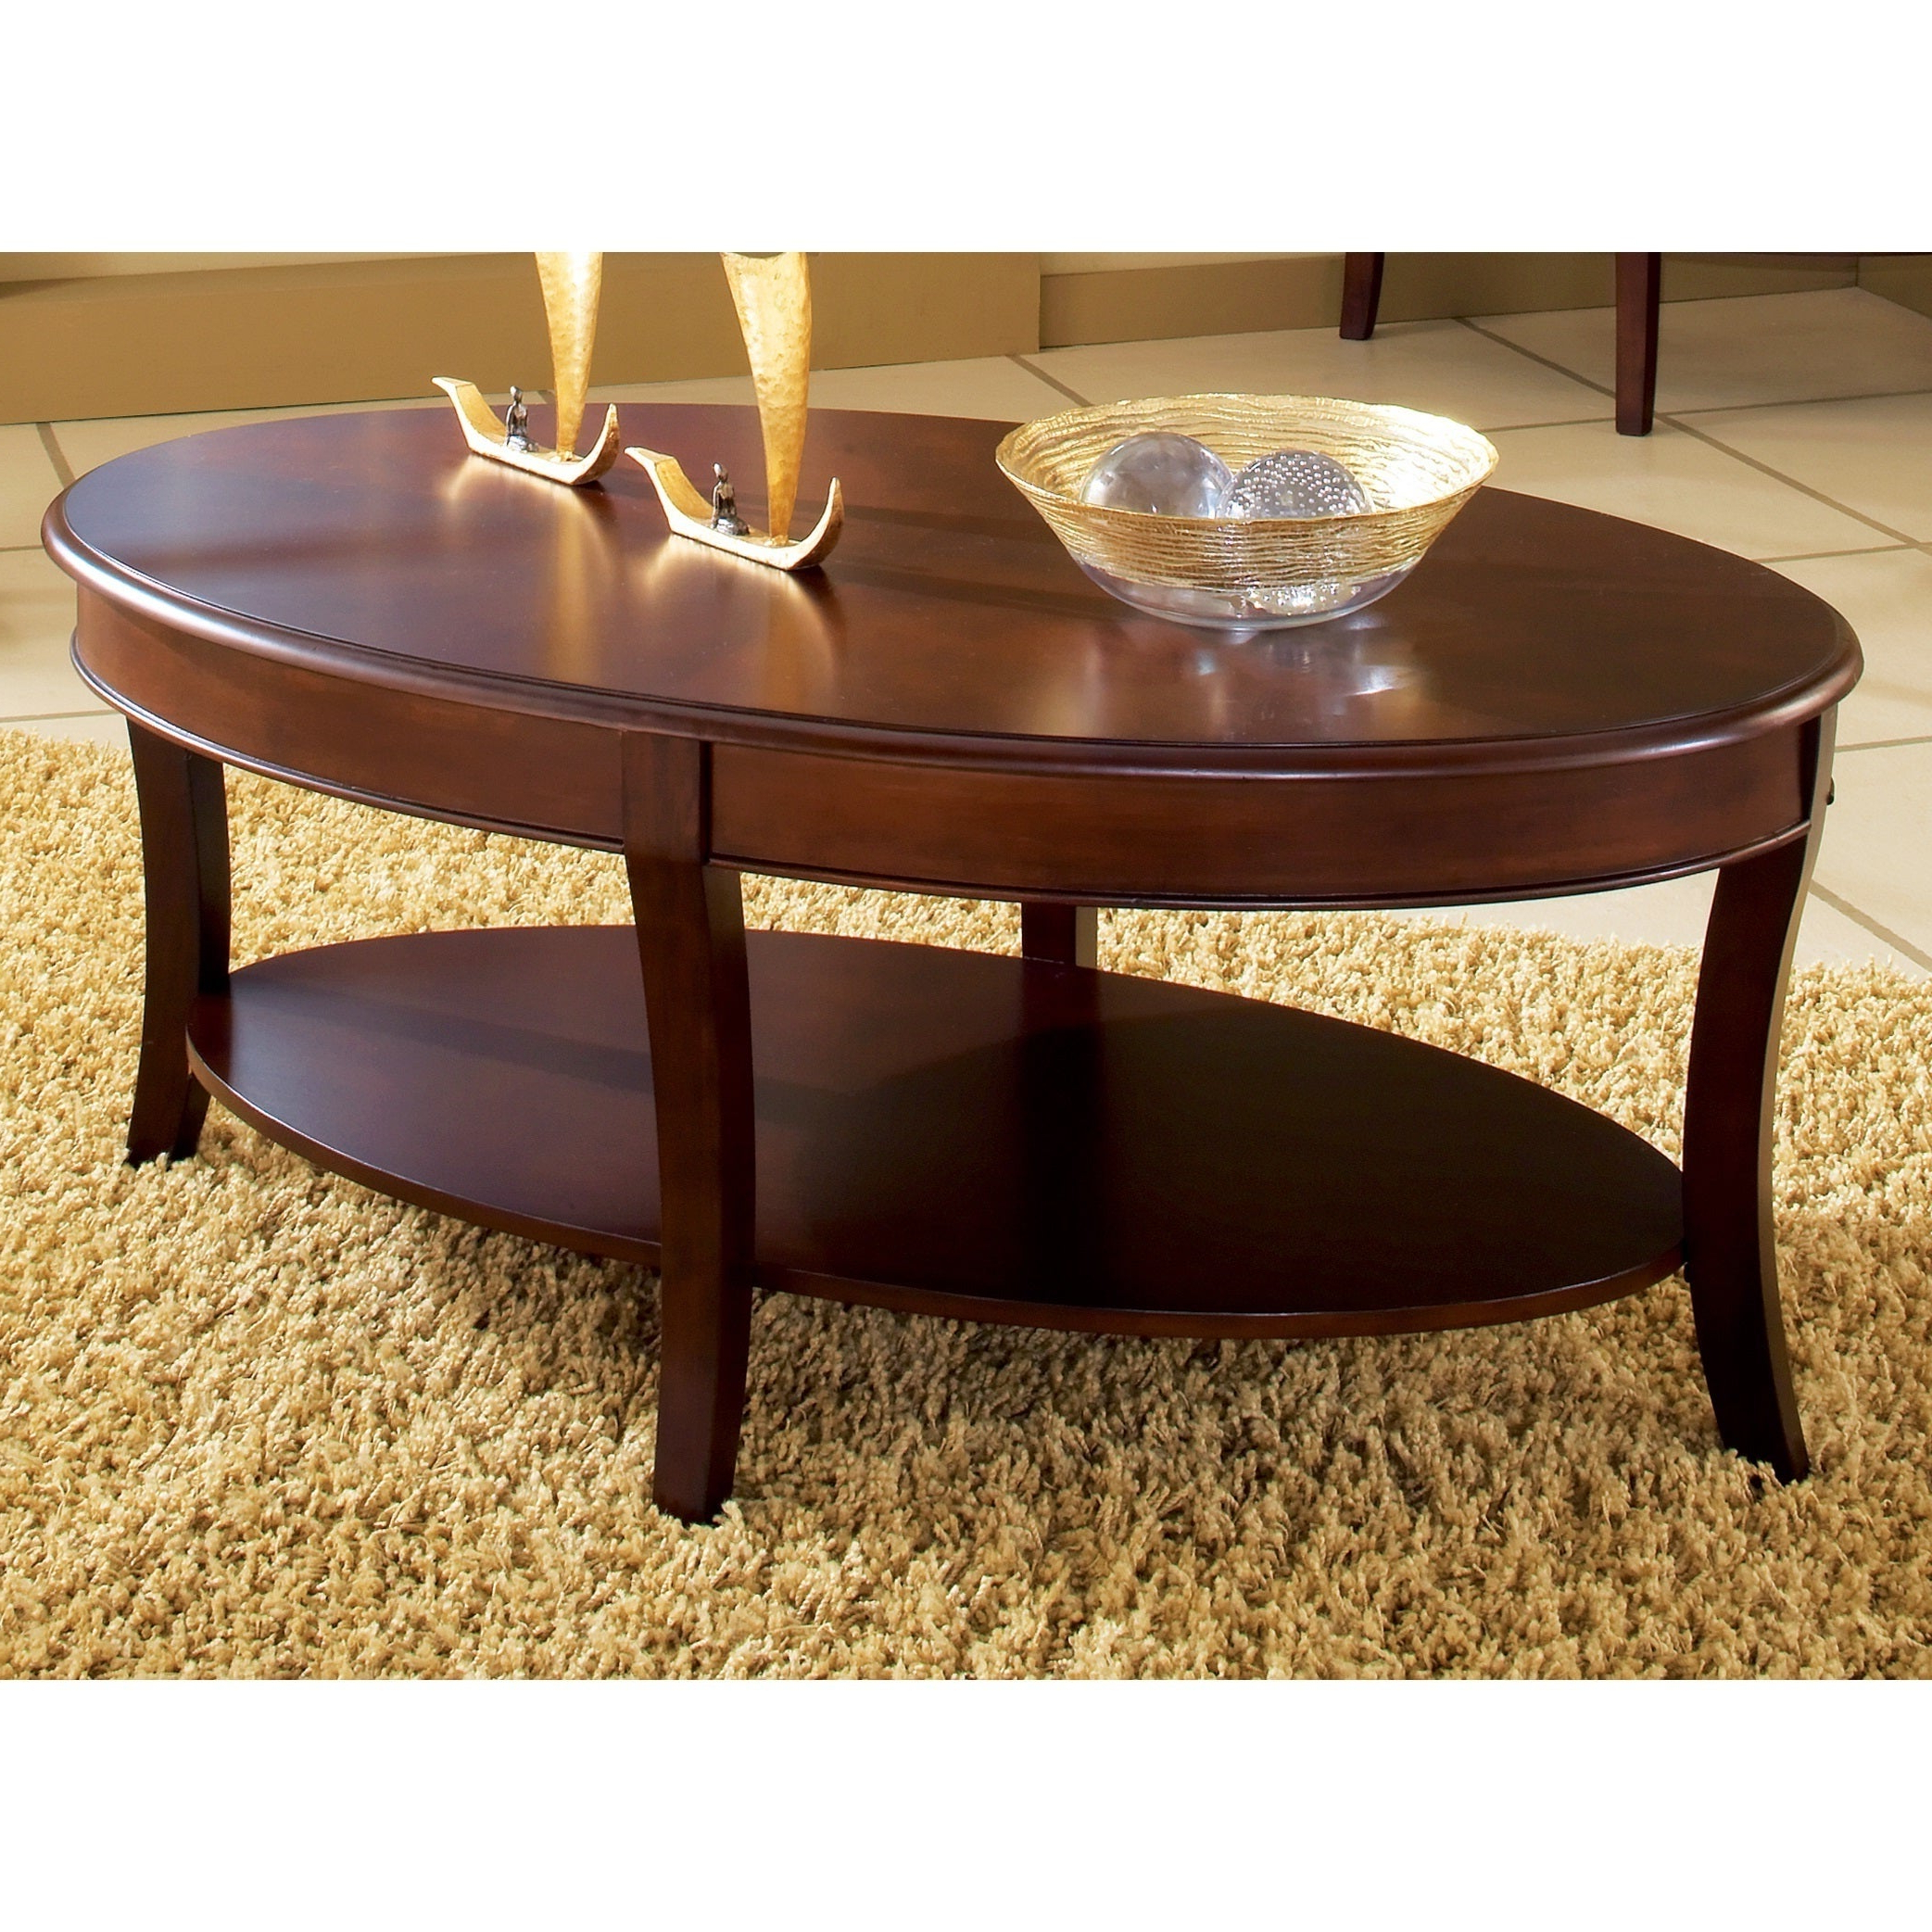 Copper Grove Angelina Oval Coffee Table Intended For 2019 Winslet Cherry Finish Wood Oval Coffee Tables With Casters (View 4 of 20)